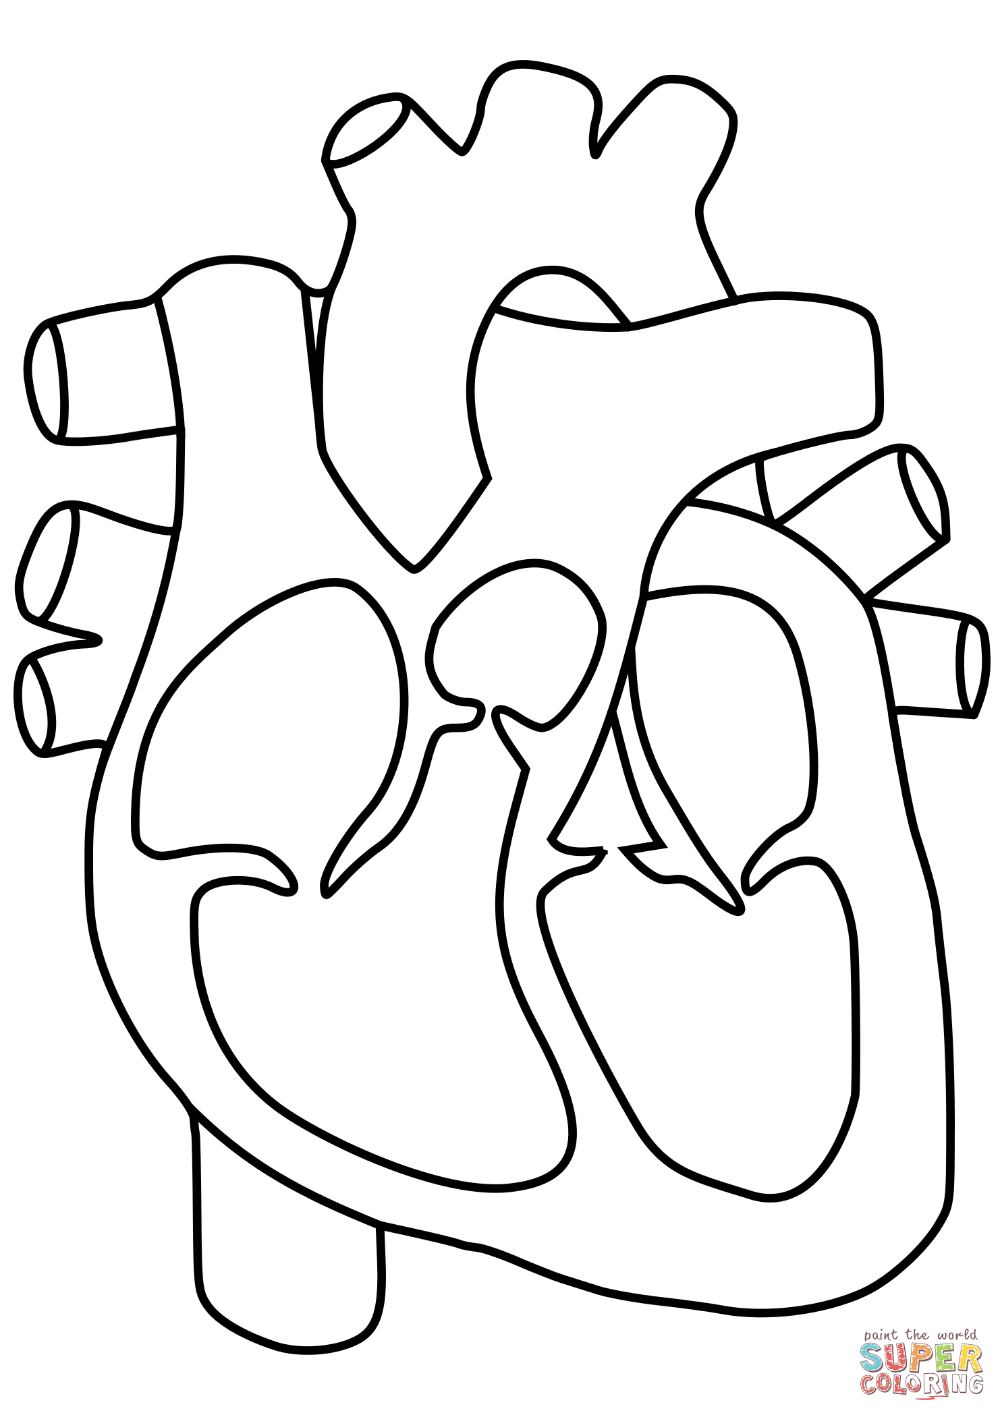 Coloring Sheet Of Human Heart Pics